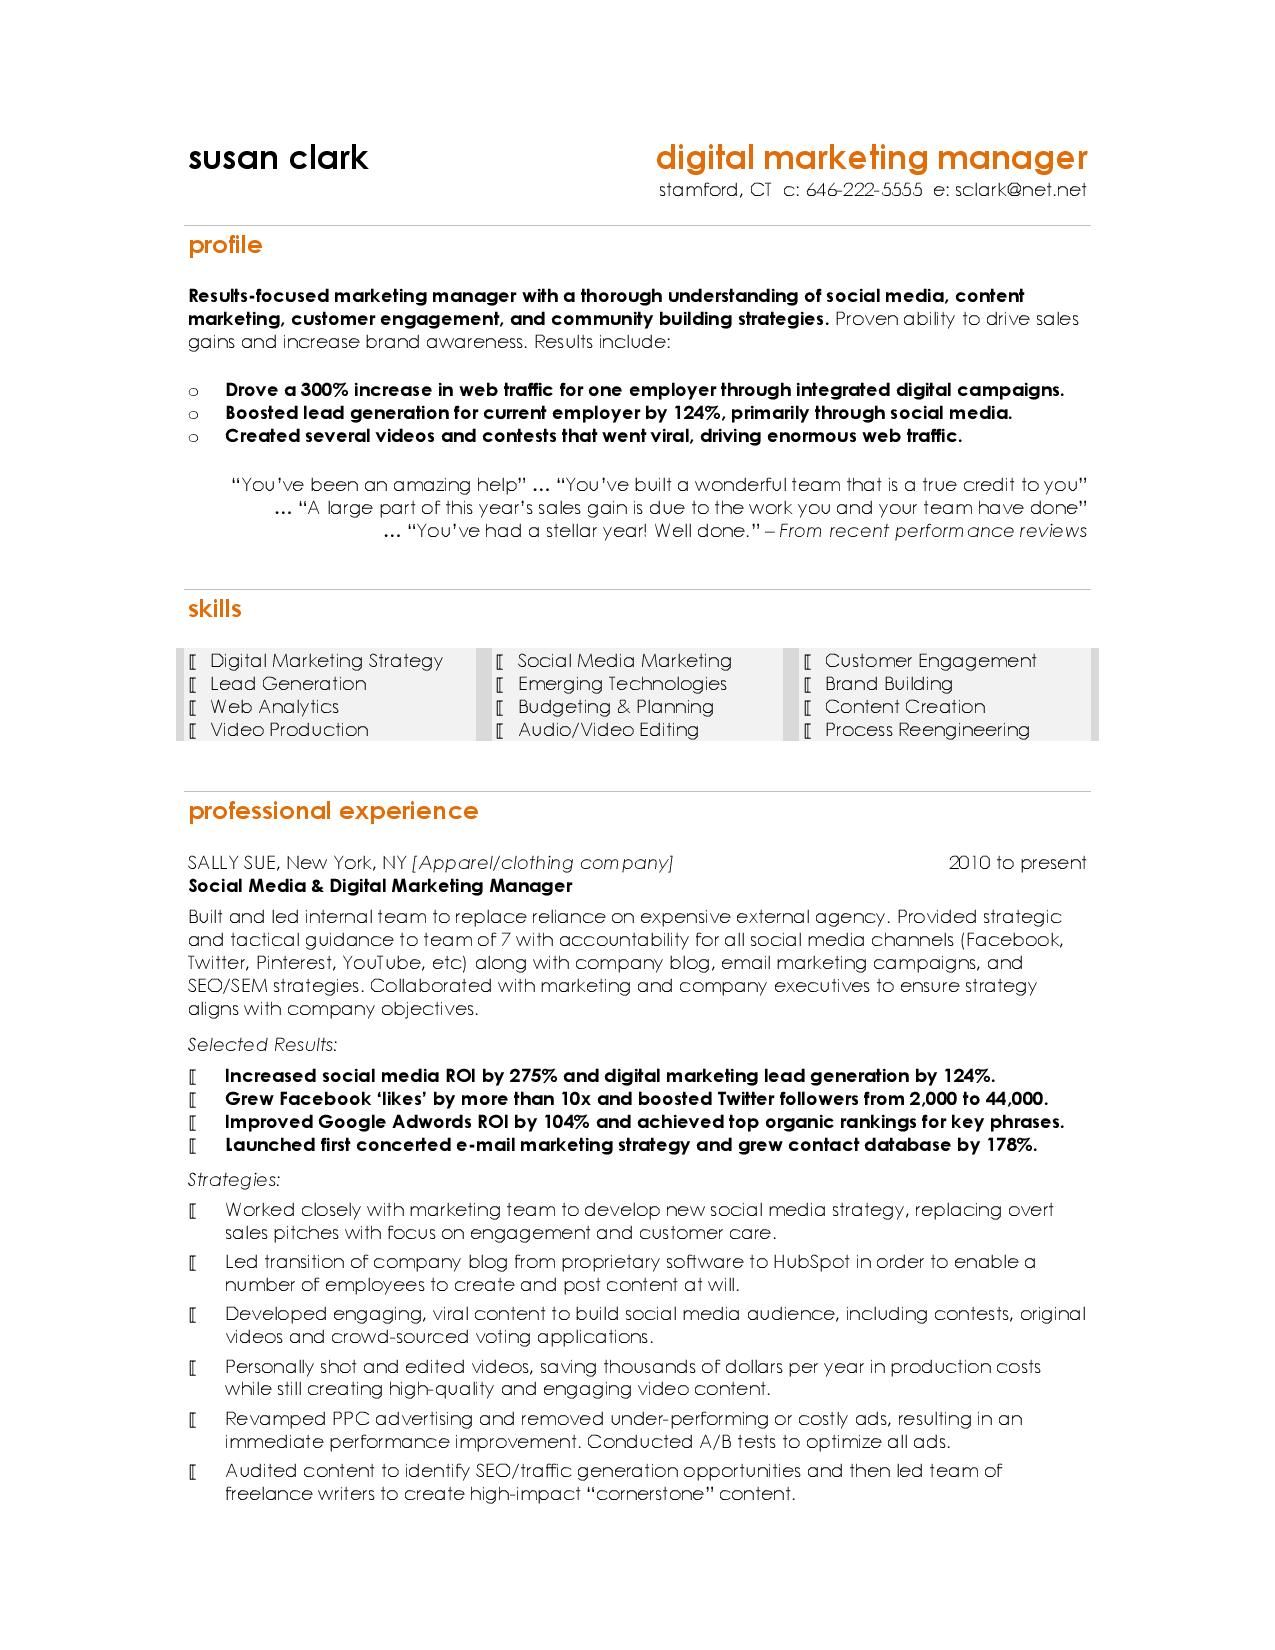 Digital Marketing Marketing Resume Digital Marketing Manager